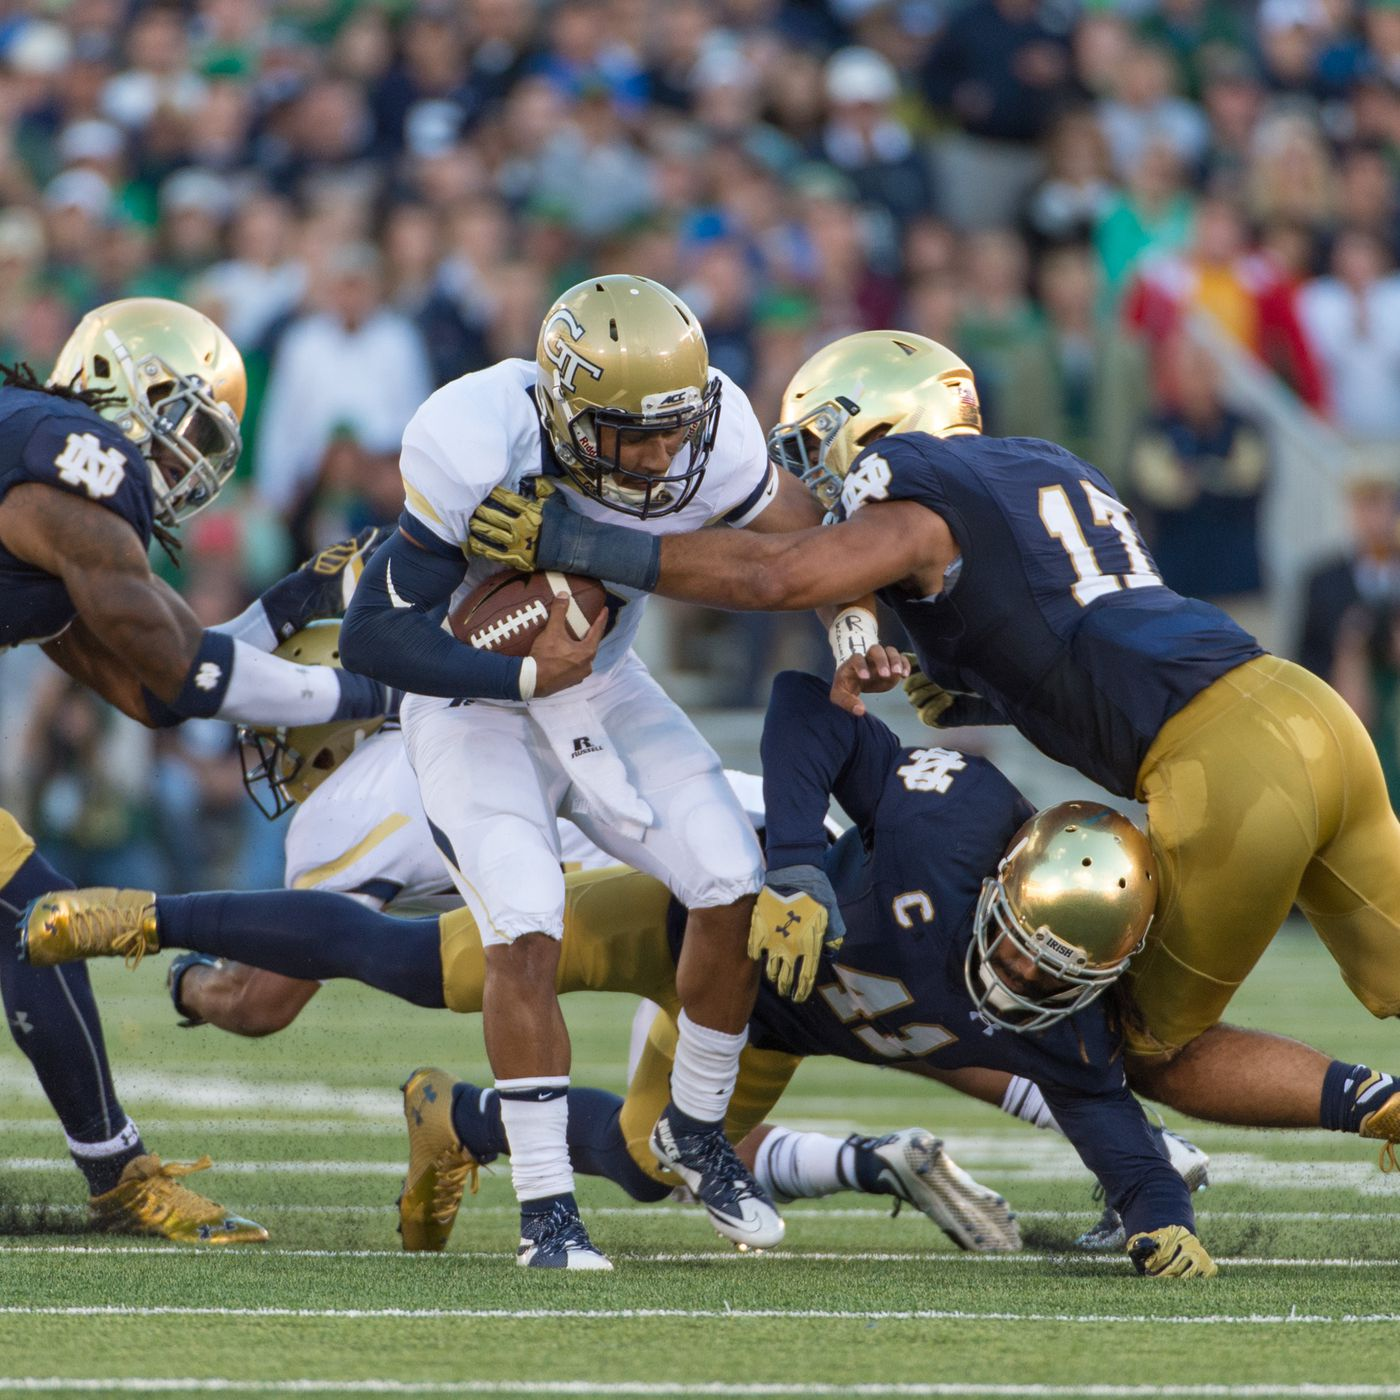 Notre Dame Football Georgia Tech Game Is Moved From Nfl Stadium To Bobby Dodd One Foot Down